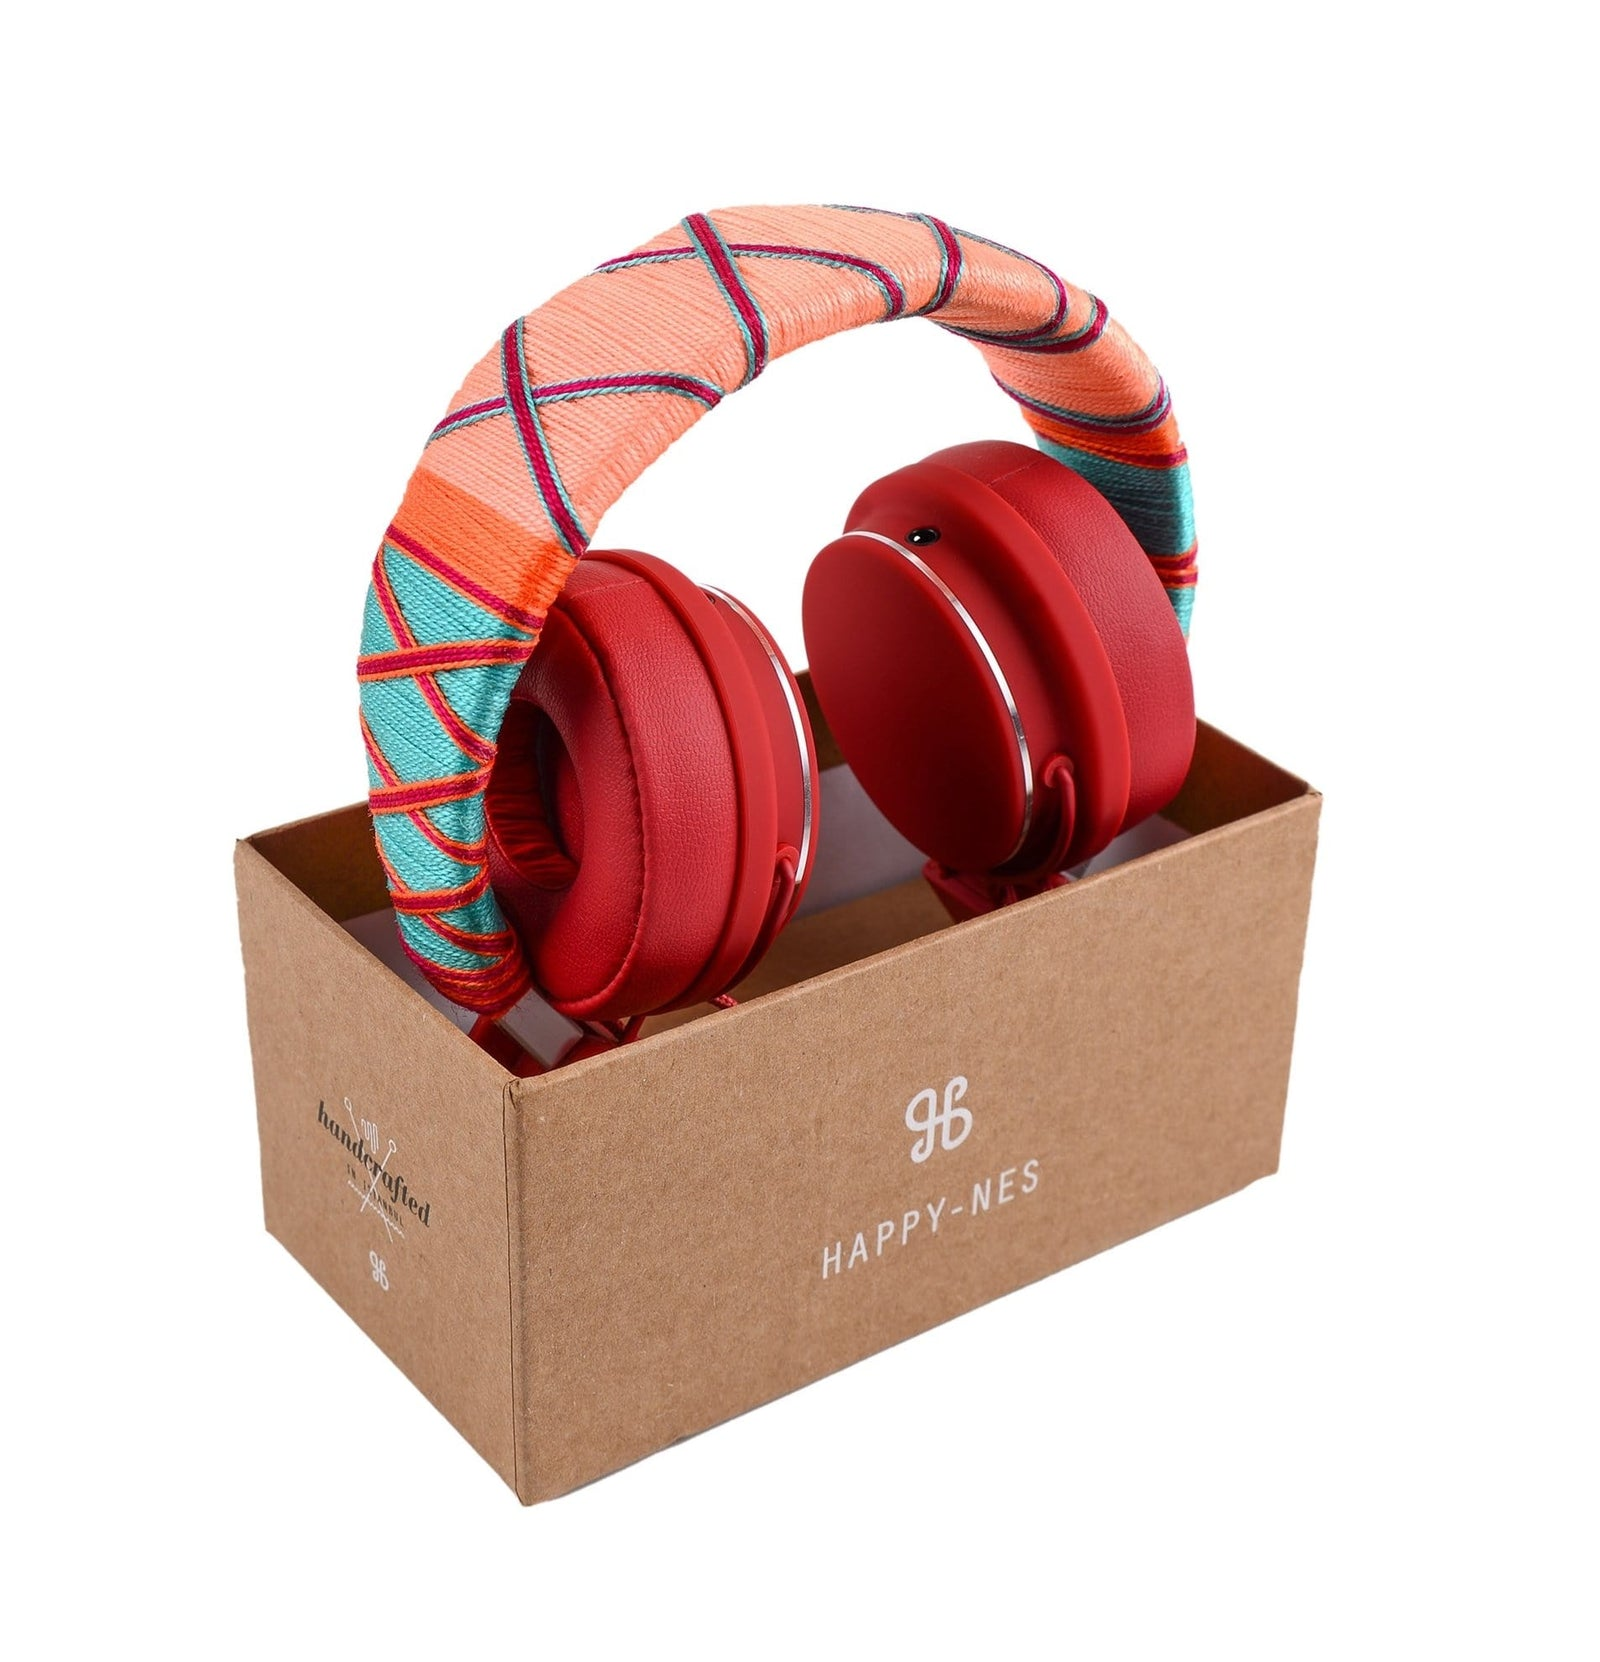 Colorful Happy-Nes headphone in box handcrafted on New Urbanears Plattan 2